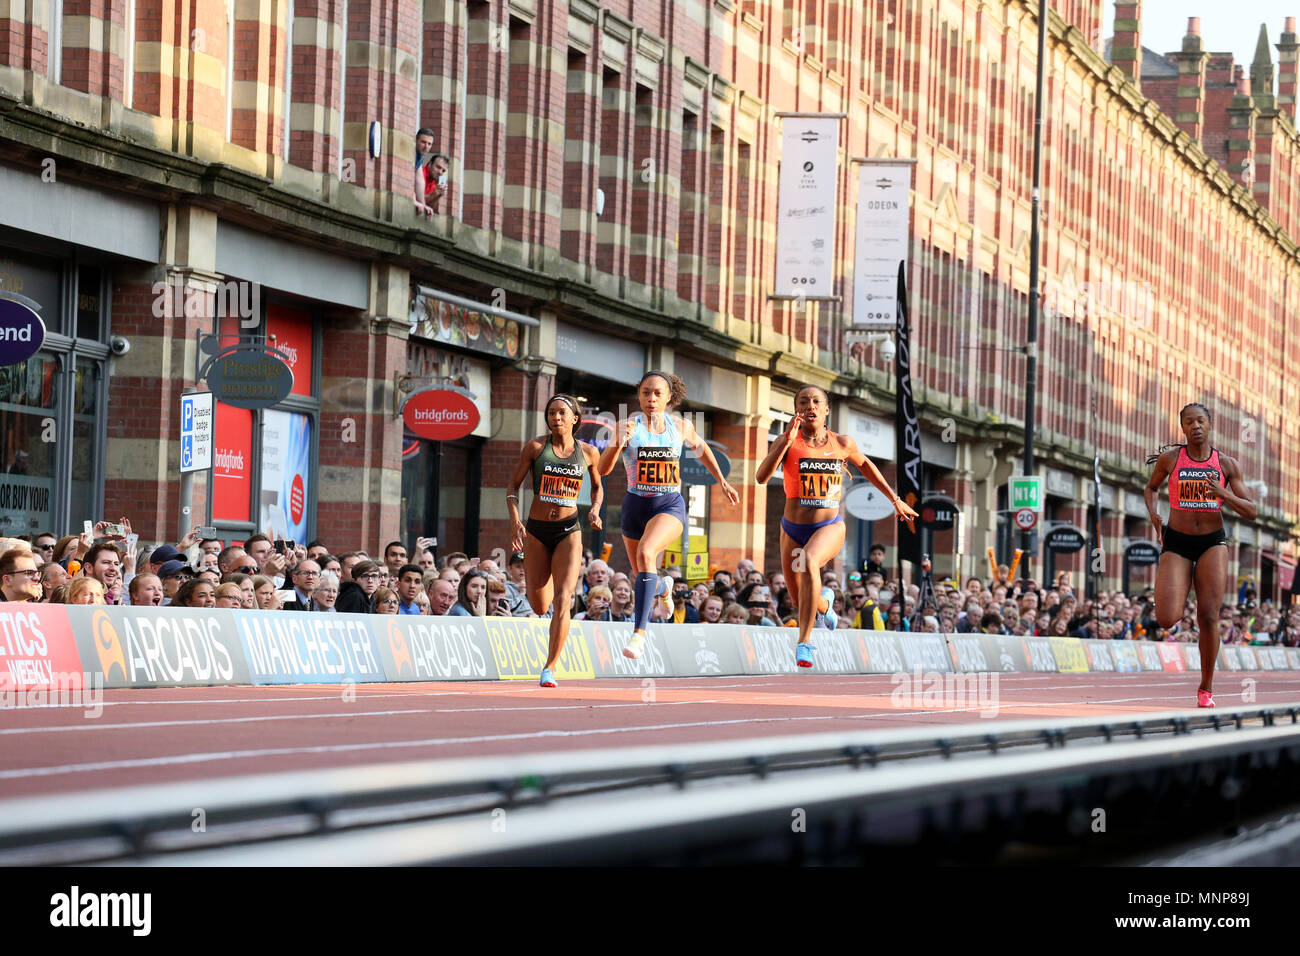 Manchester, UK. 18th May, 2018. Marie Josee Ta Lou, Allyson Felix, Bianca Williams and Finette Agyapong at the Arcadis Great City Games, Manchester,18th May, 2018 (C)Barbara Cook/Alamy Live News - Stock Image